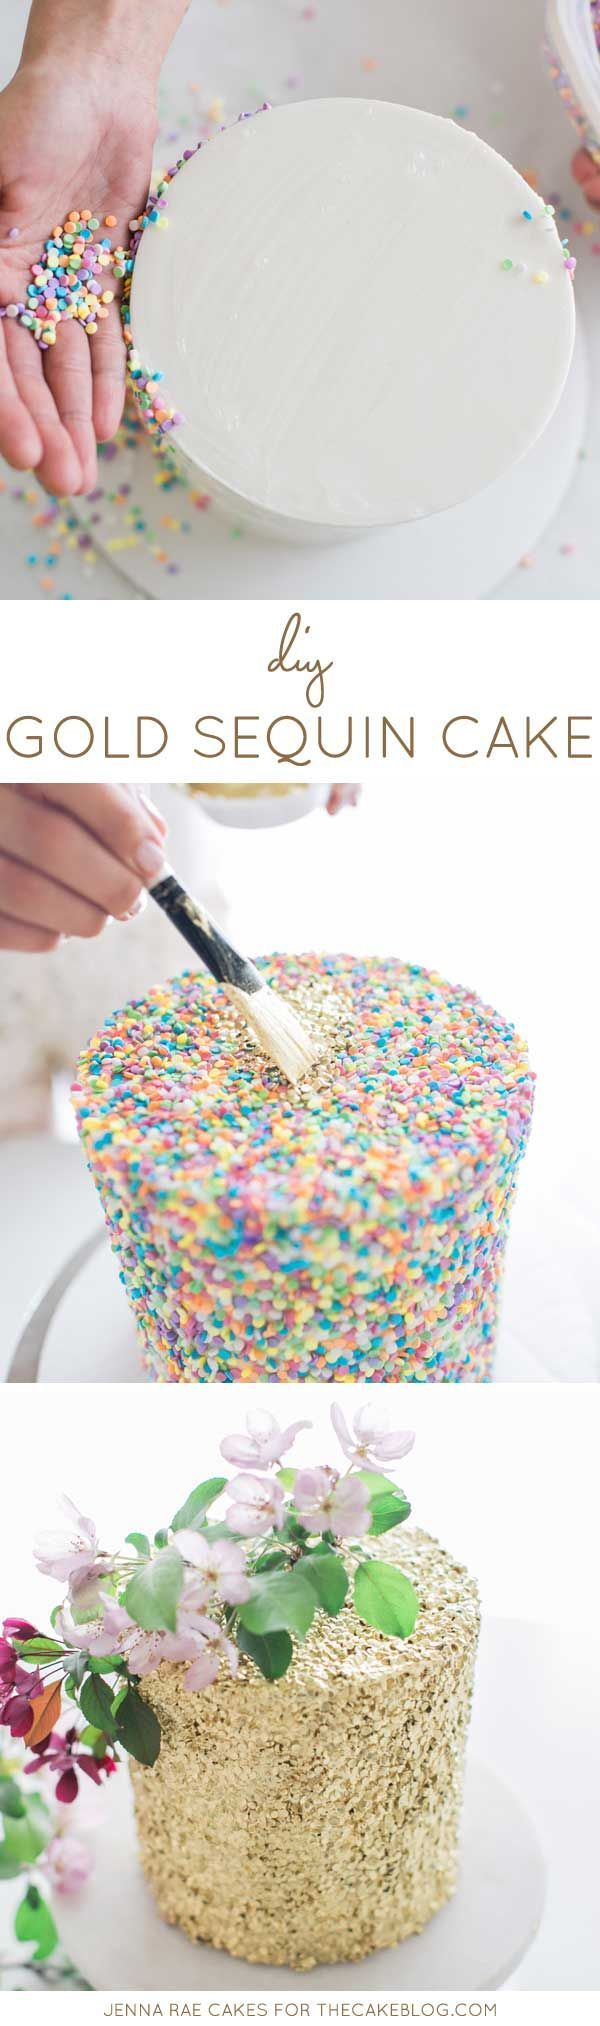 How to make a Gold Sequin Cake.  Display on a cake stand and gold sequin table runner from Afloral.com.  Find high-quality silk flowers to decorate your cake, and more, at http://www.afloral.com/